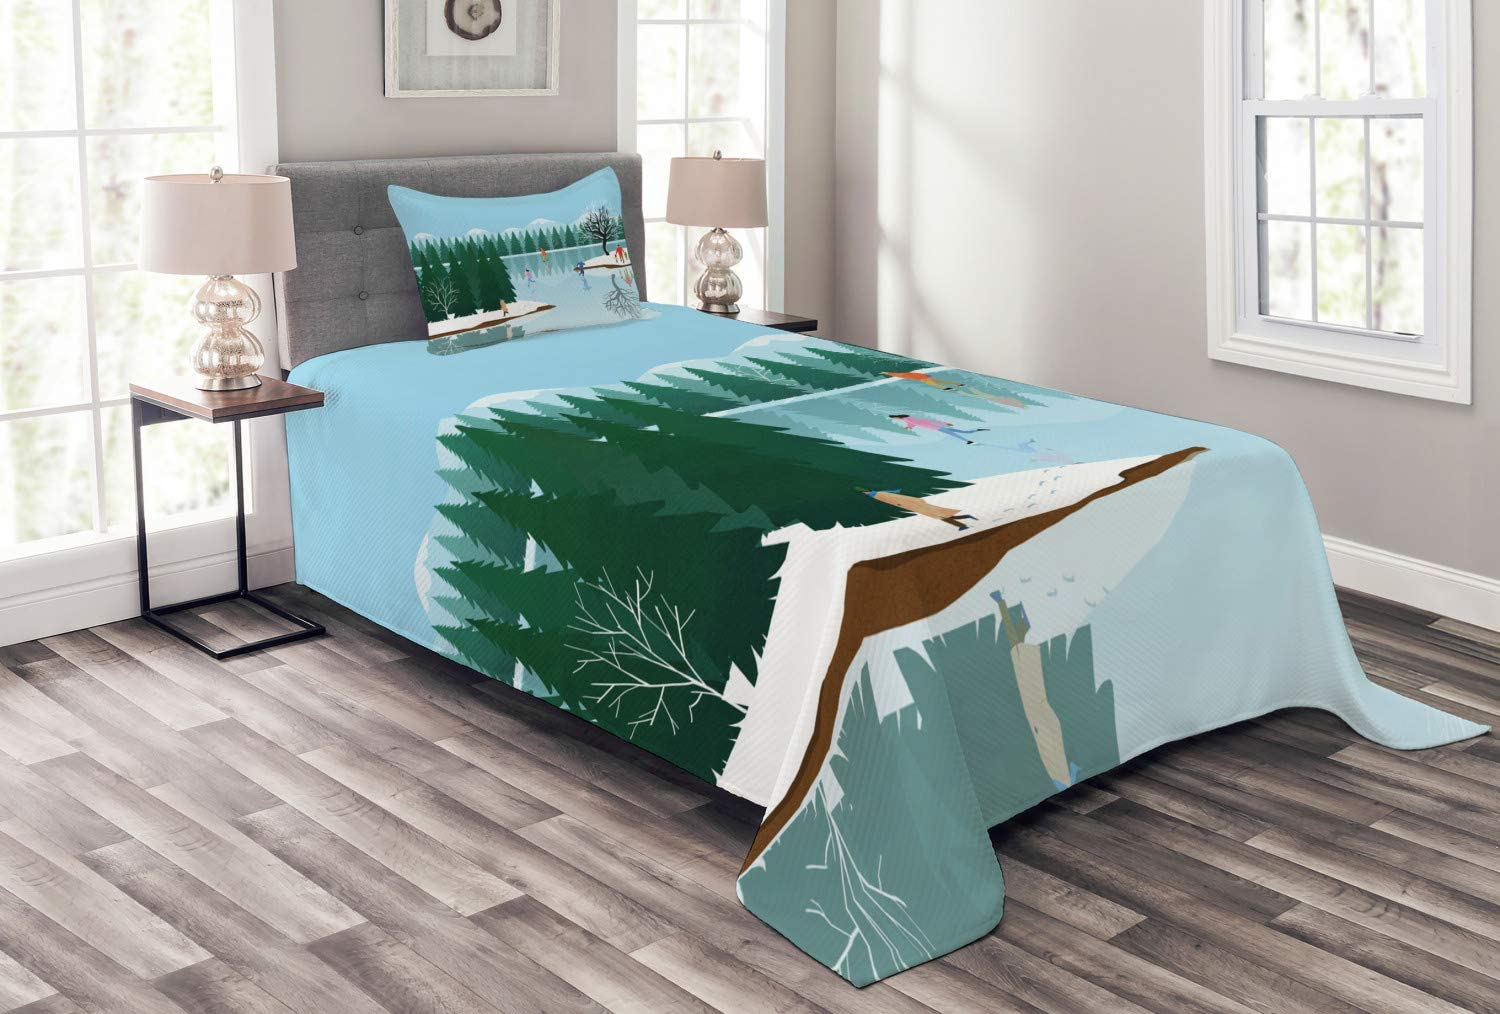 Ambesonne Winter Bedspread Spasm price Frozen Lake Christmas Ice Holiday Ranking TOP14 Sk